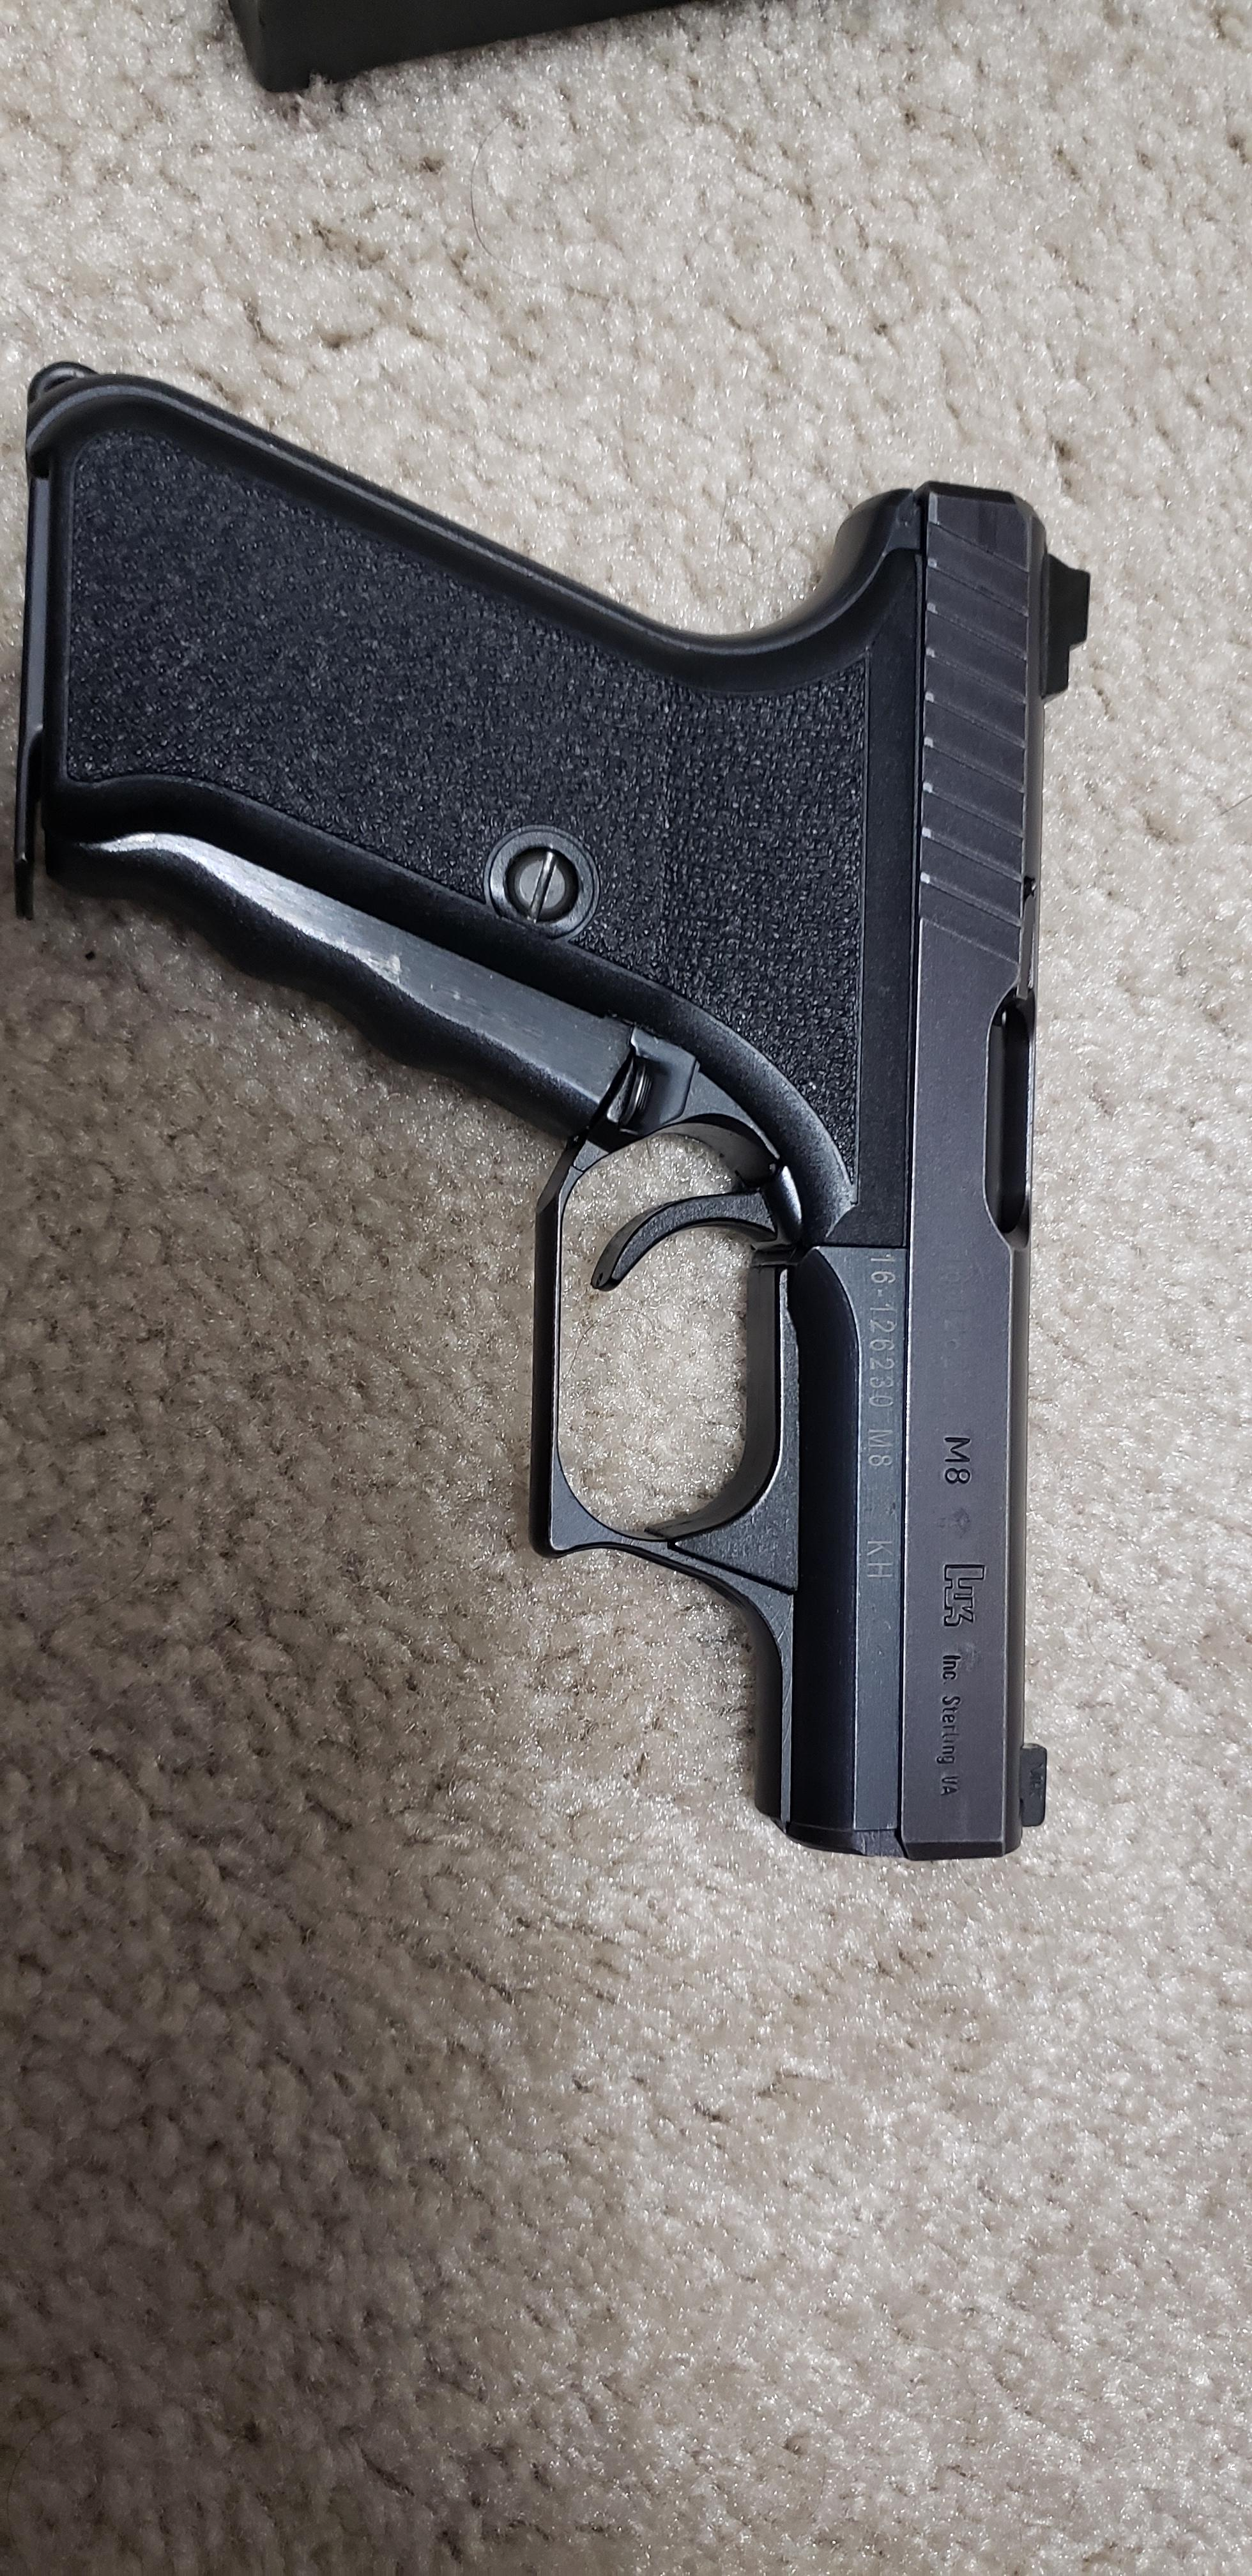 WTS: great condition p7m8-20190925_205826_1570412430062.jpg